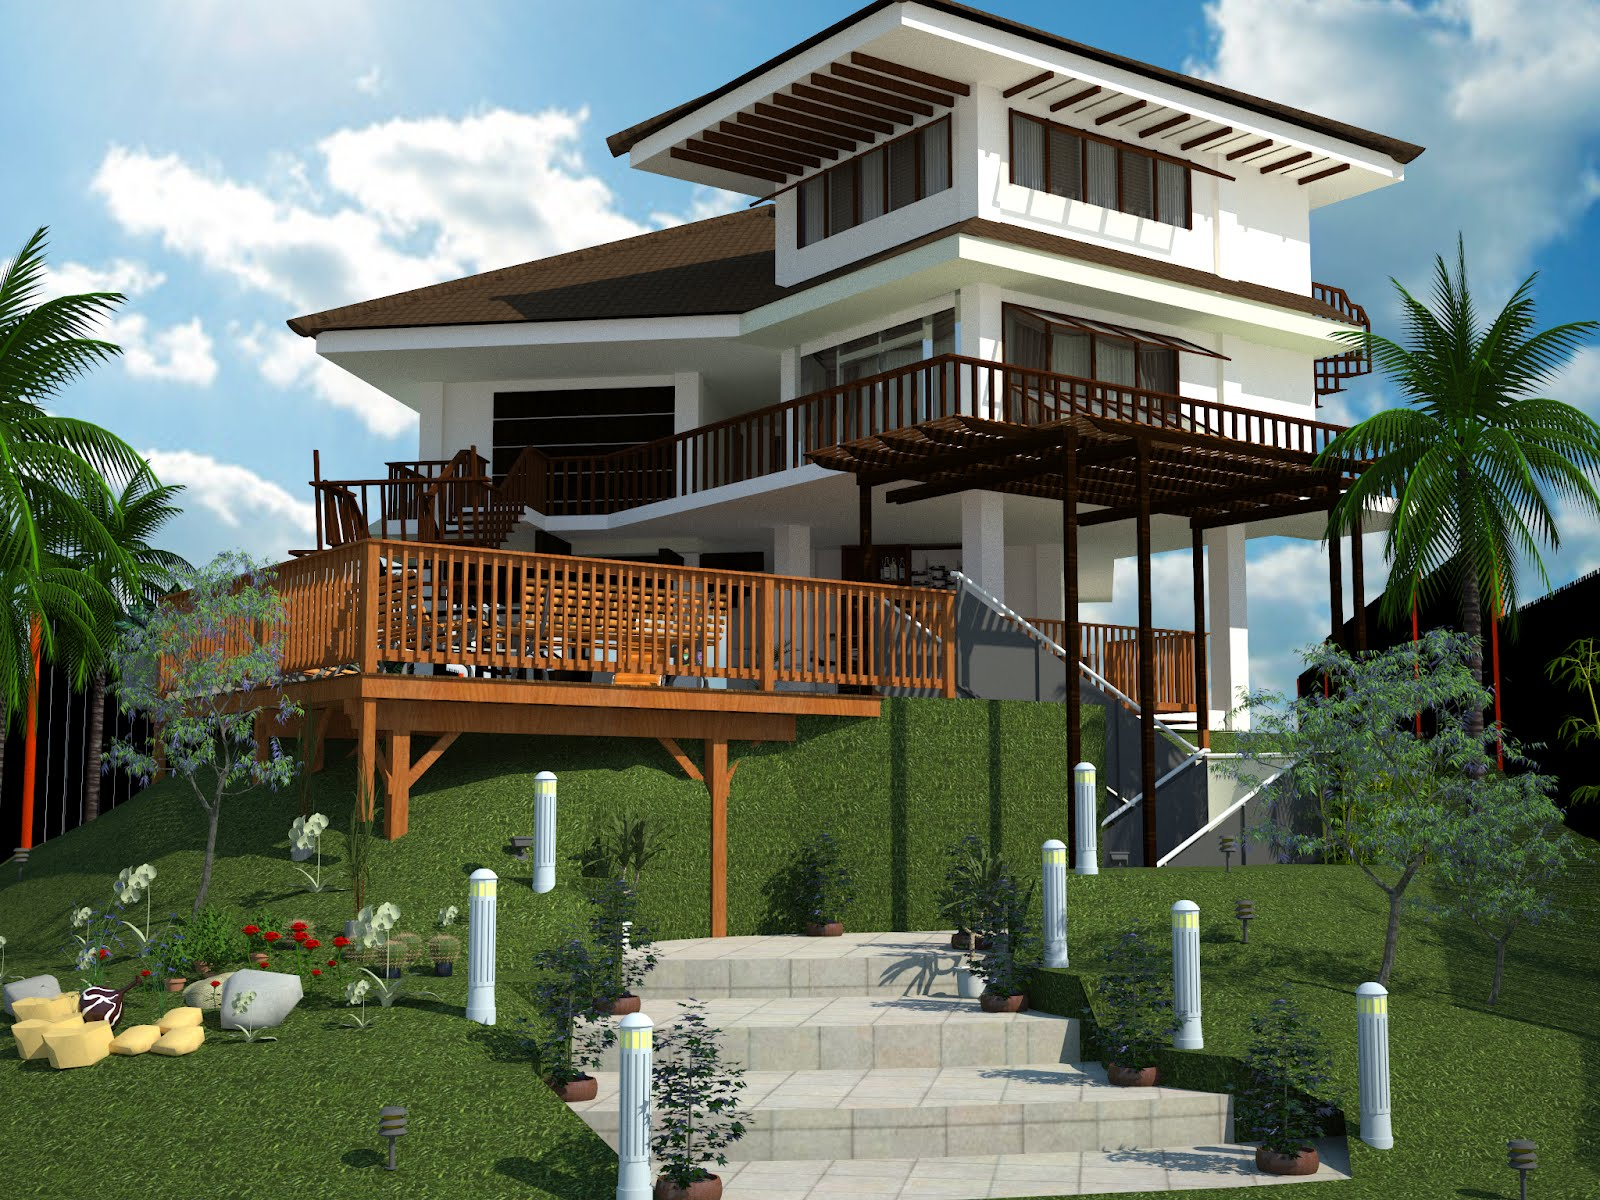 Tabogon Philippines  City new picture : ... Constructors: Proposed Beach Resort and Rest House in Tabogon Cebu